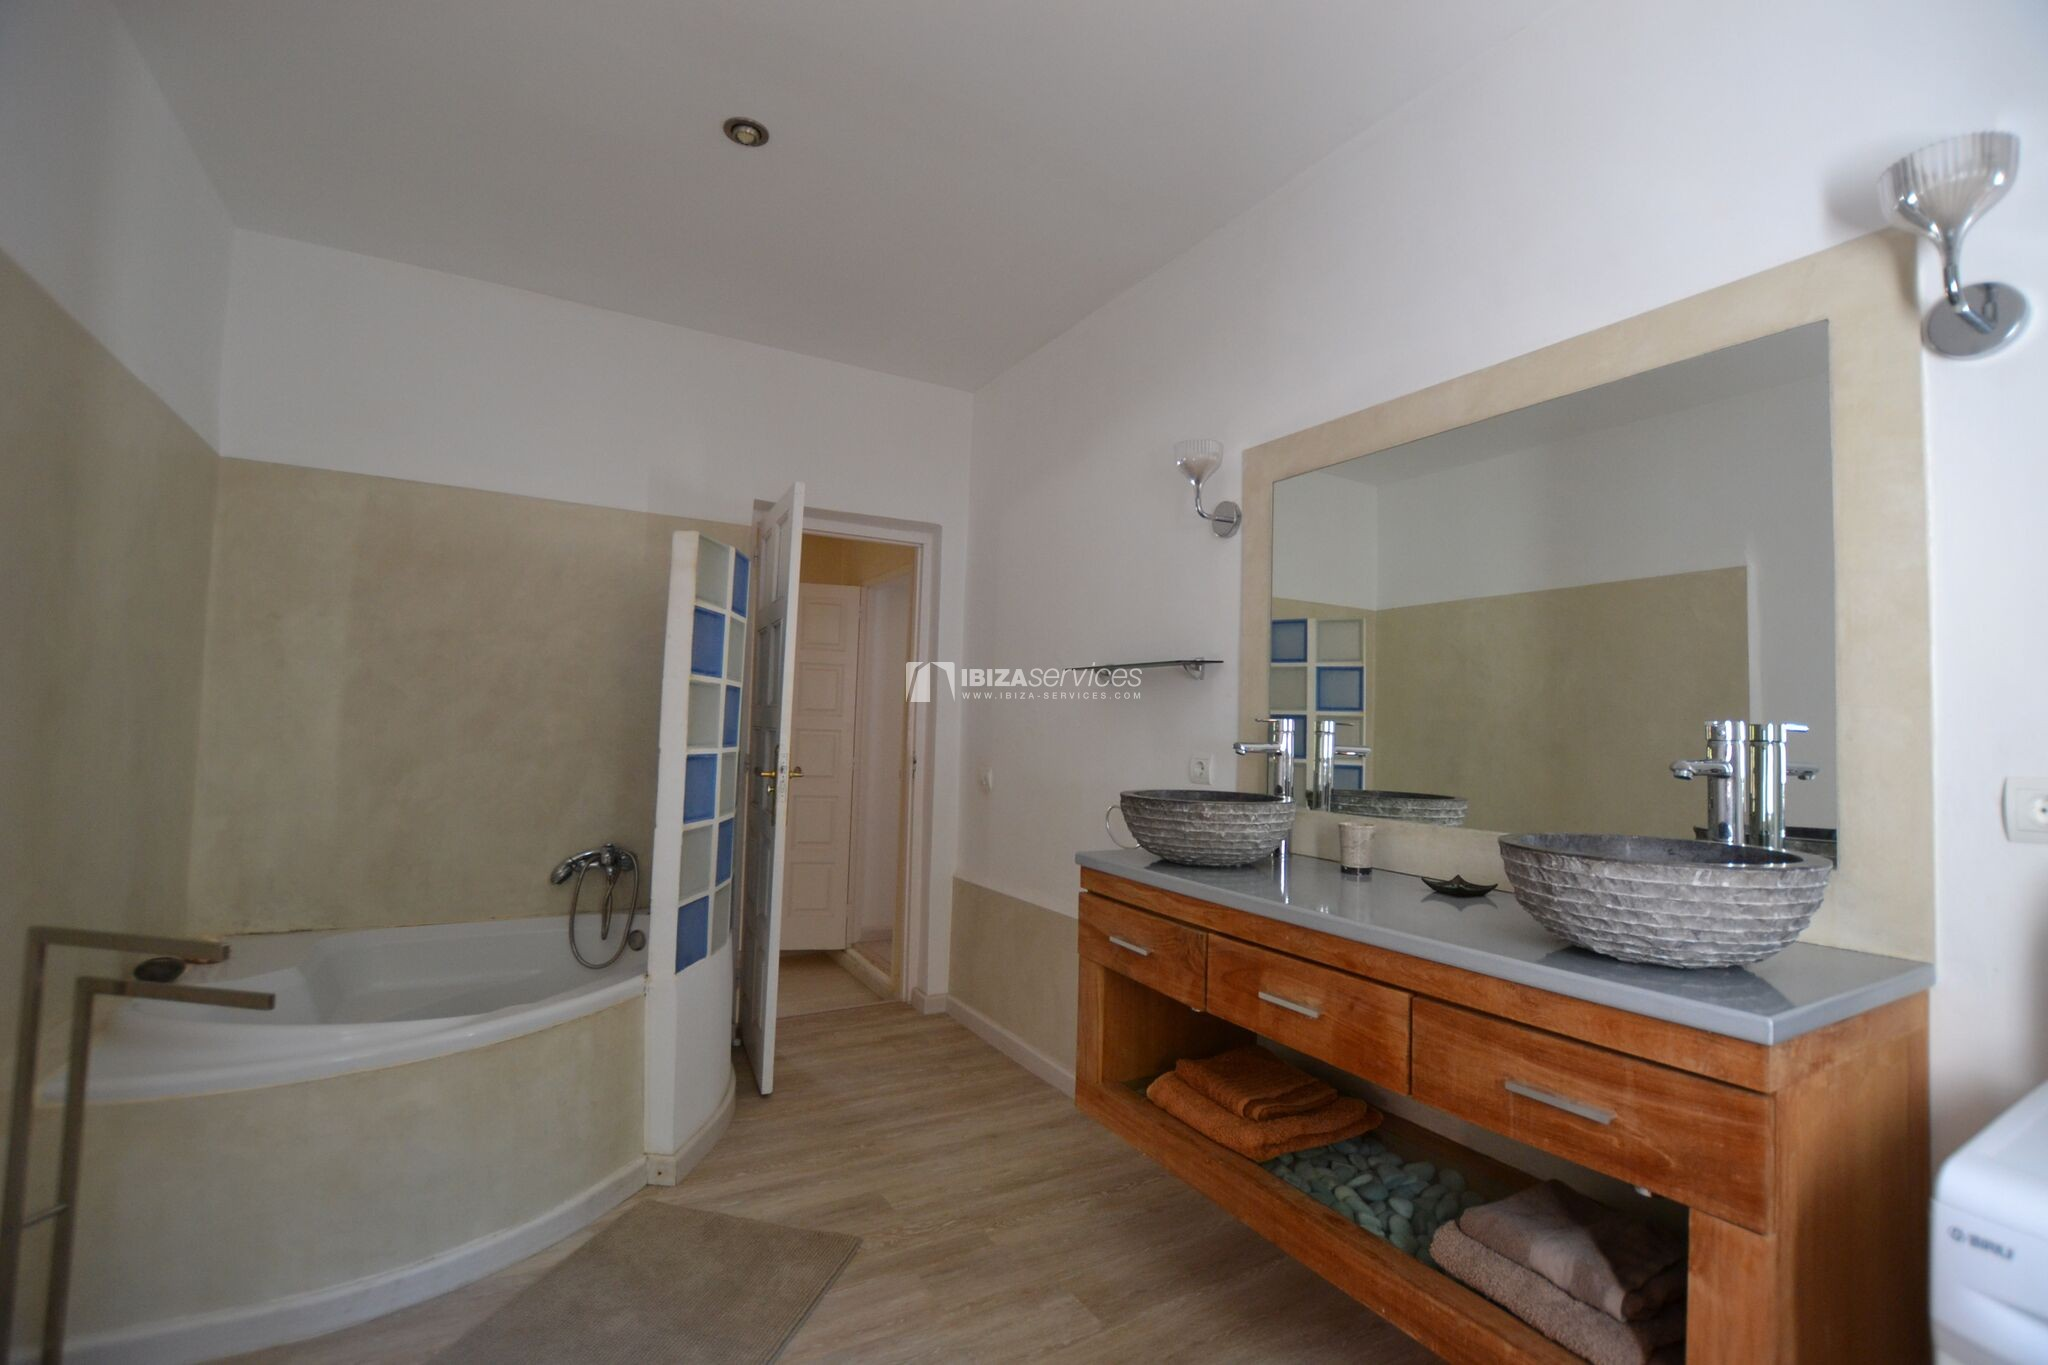 Charming house weekly rental San jordi perspectiva 14